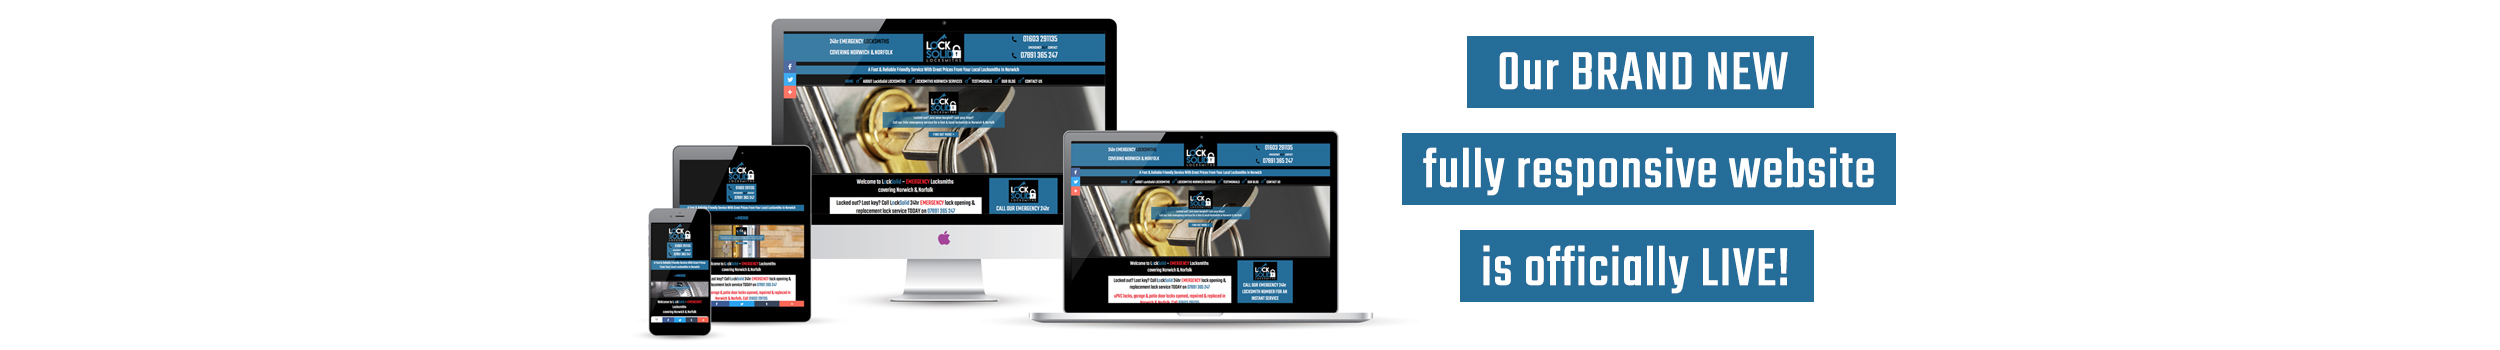 The NEW LockSolid Locksmiths responsive website is now LIVE!